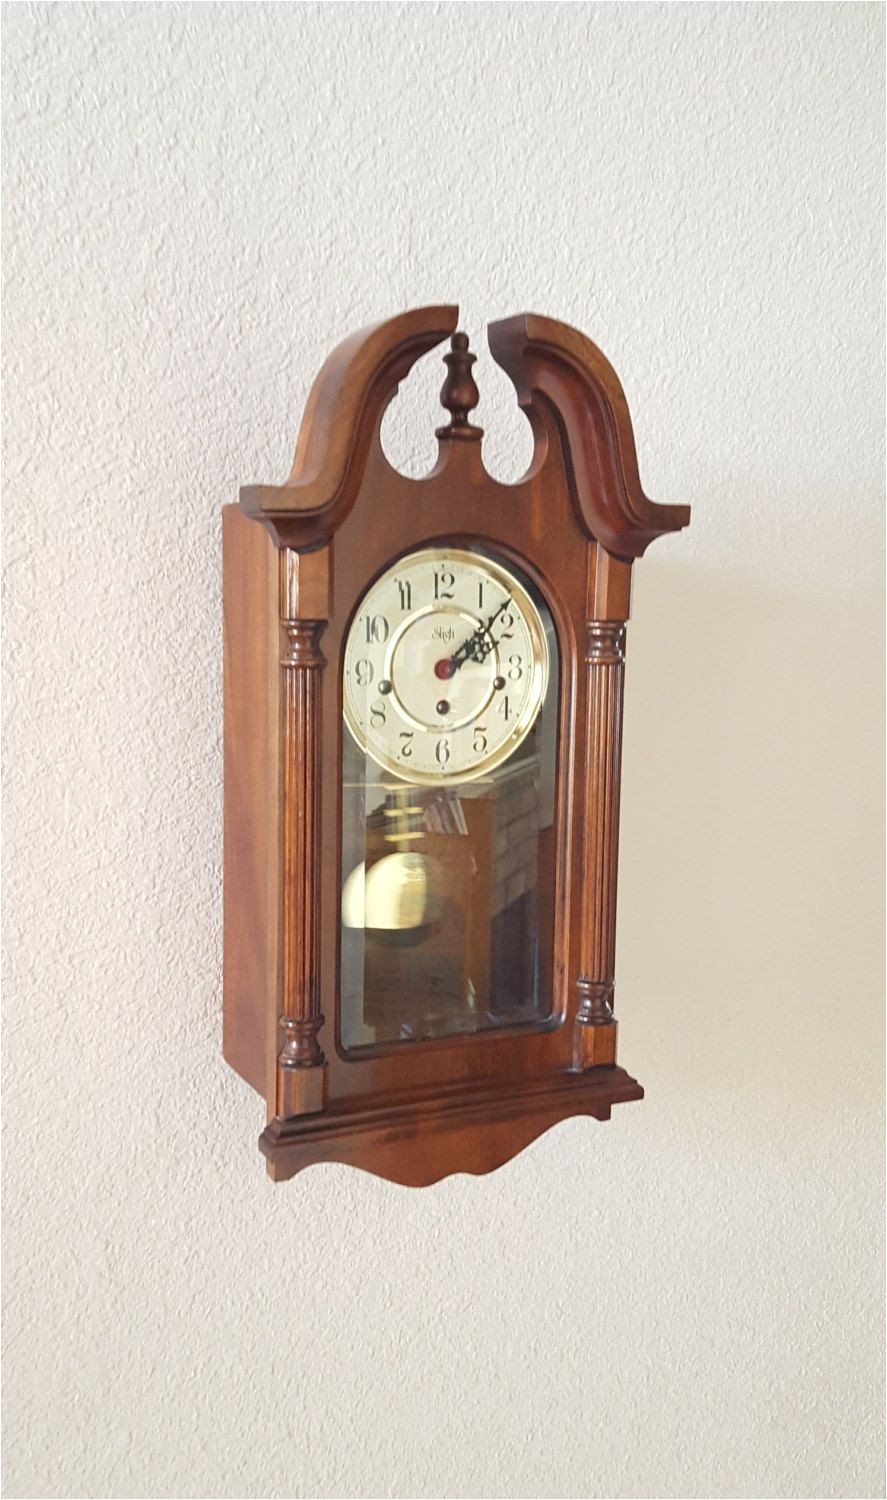 vintage antique sligh heirloom quality westminster chiming wall clock parlor clock professionally restored with warranty by theclockguys on etsy